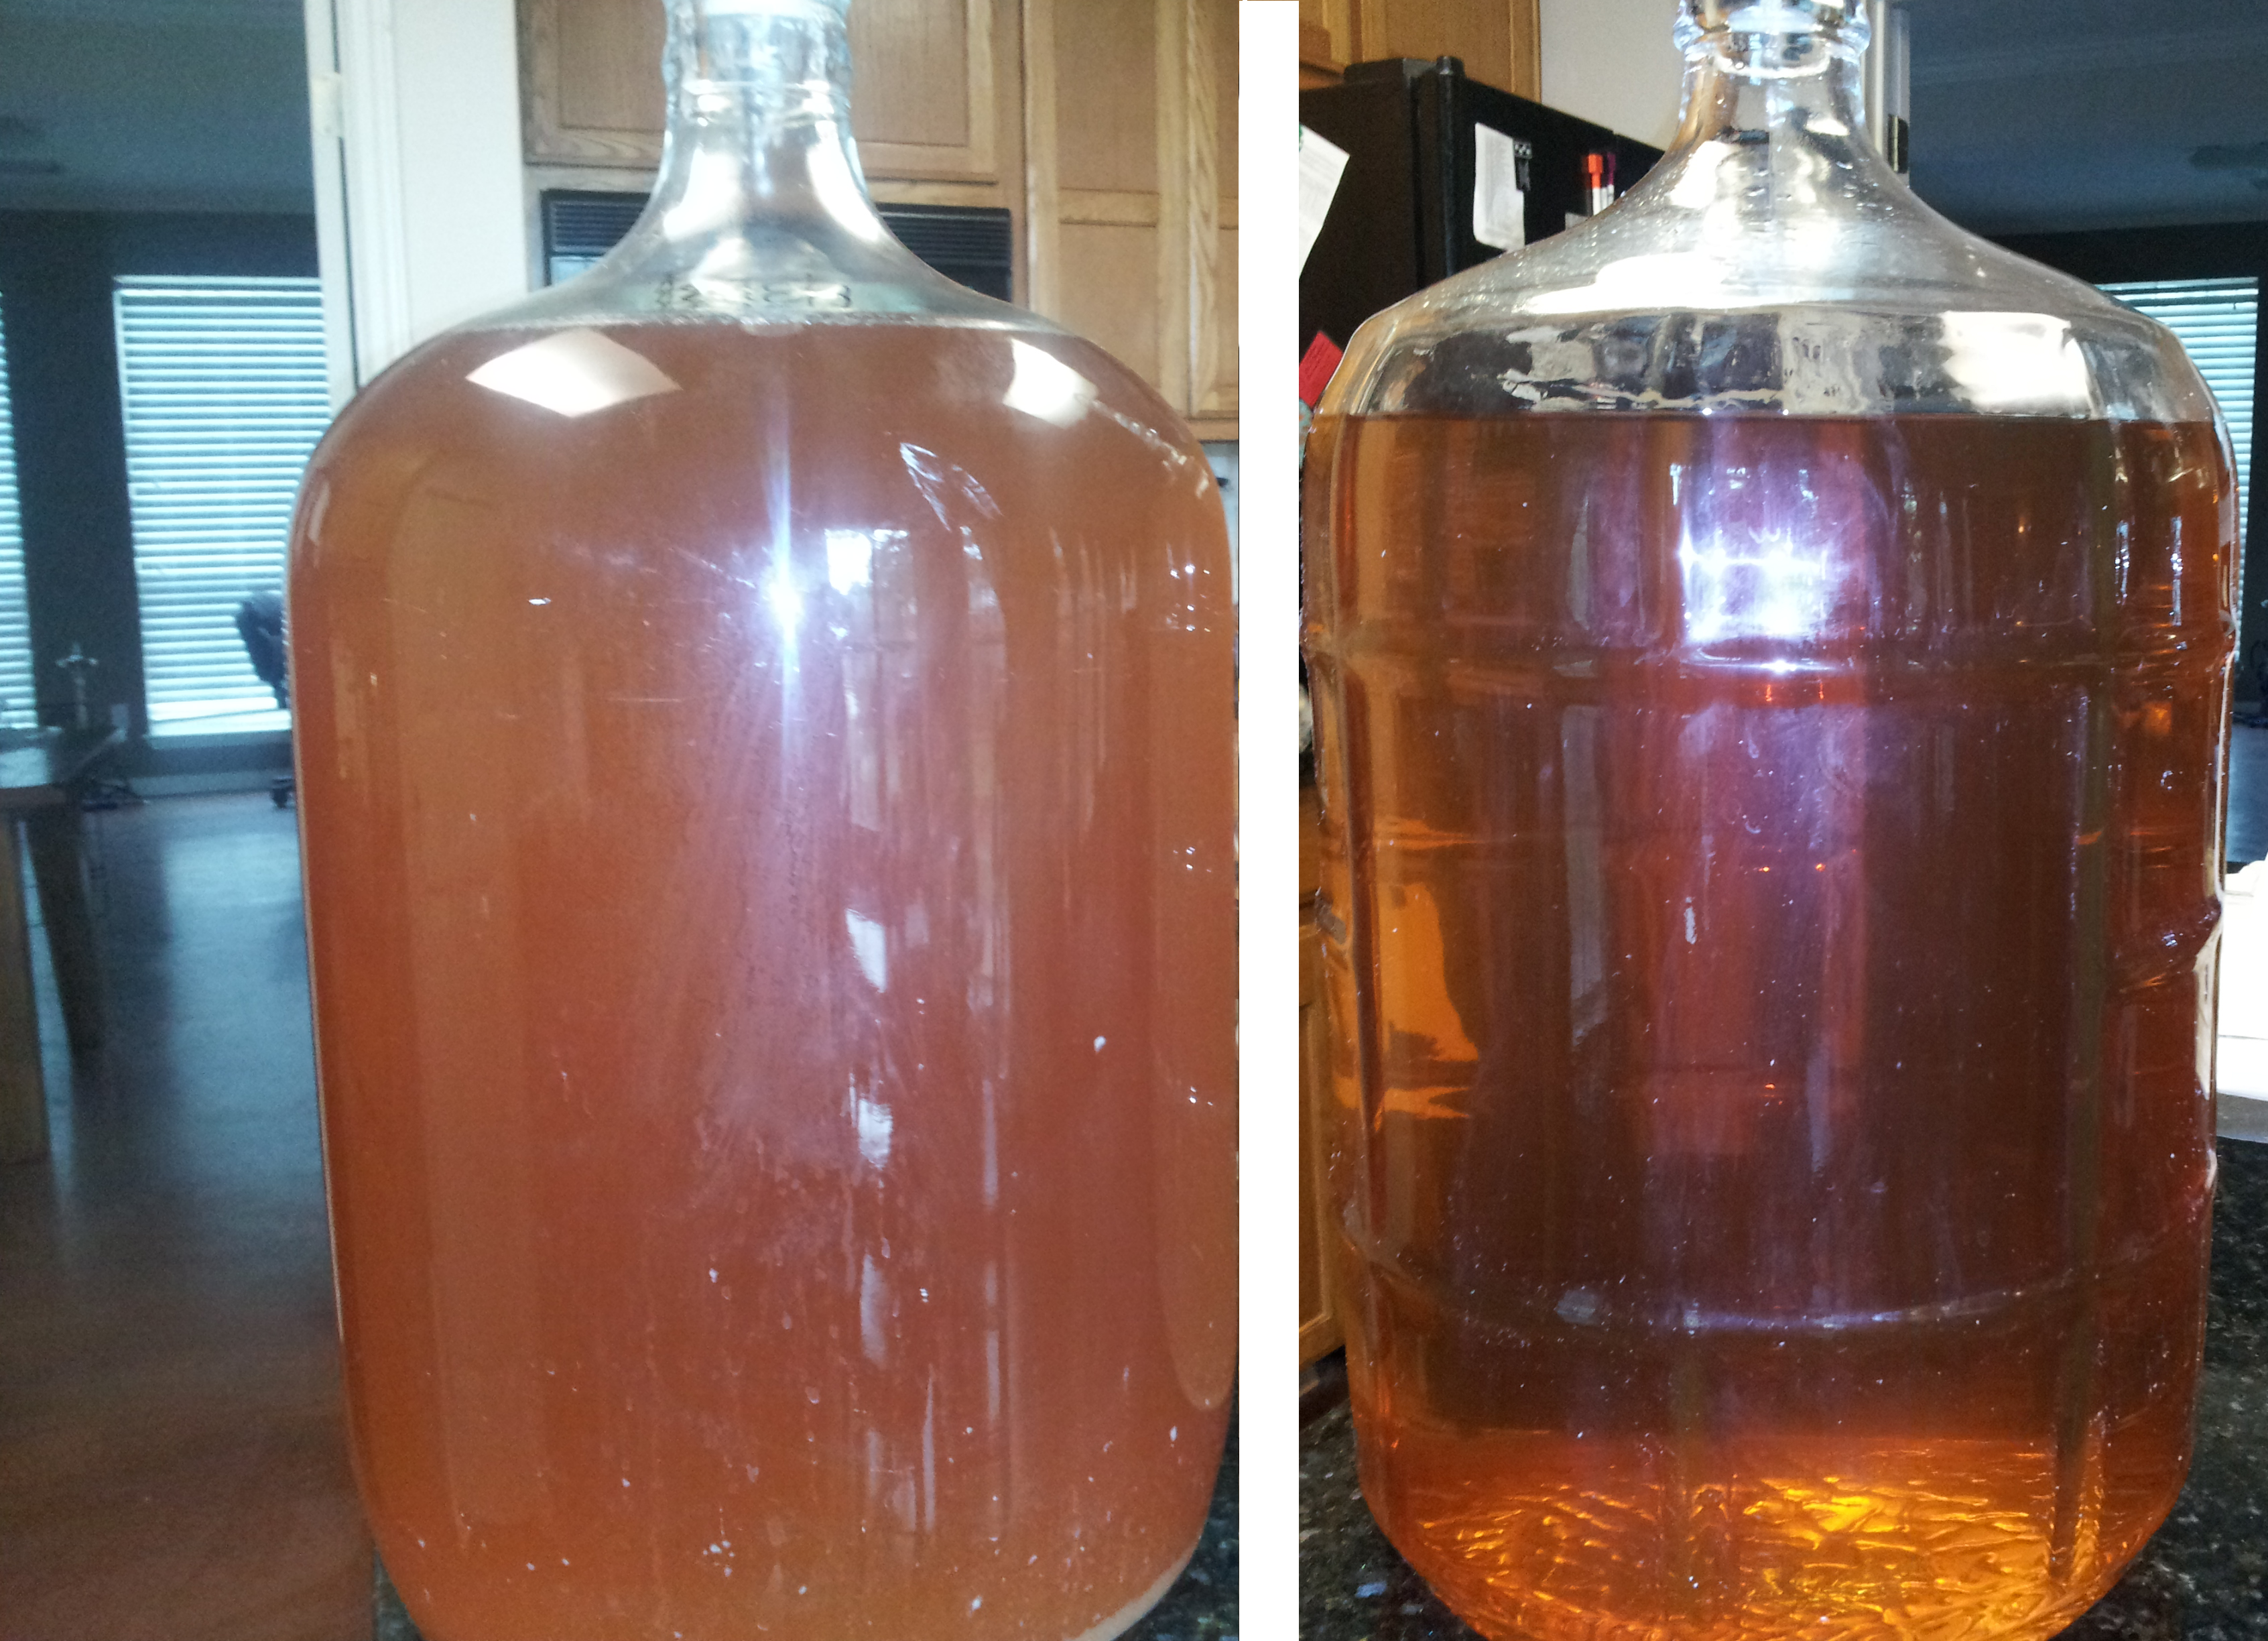 Delicious mead at home. Recipe without yeast, learn from us